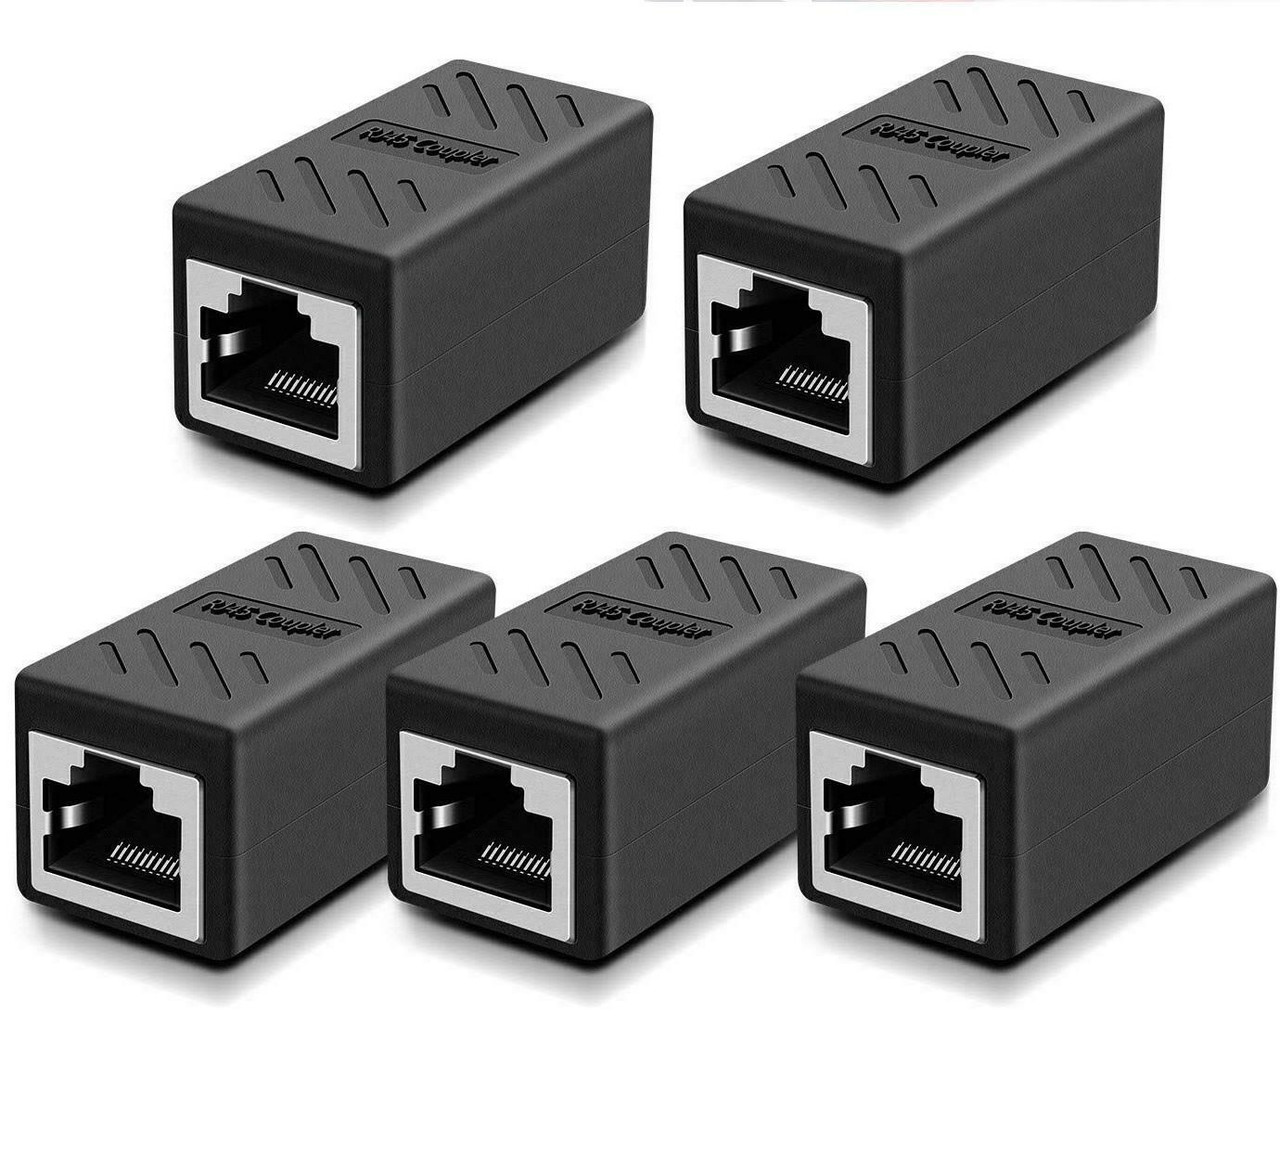 5-Pack RJ45 Inline Coupler Cat7 Cat6 Cat5e Ethernet LAN Network Cable Adapter